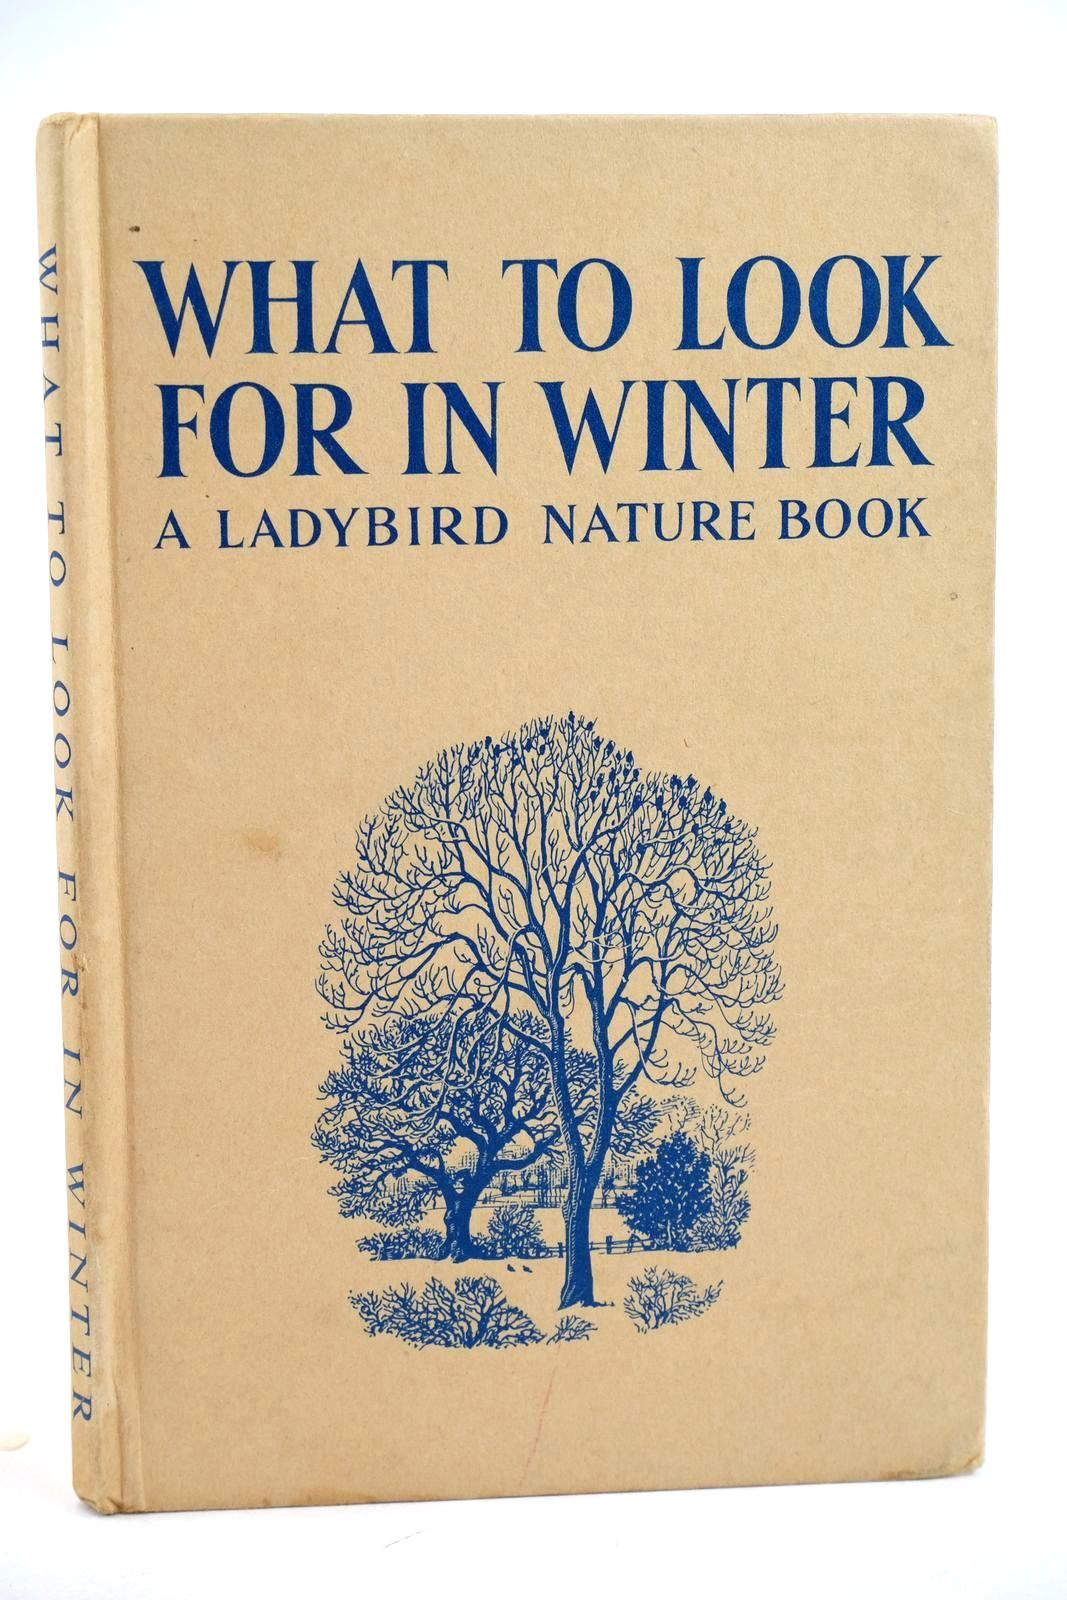 Photo of WHAT TO LOOK FOR IN WINTER written by Watson, E.L. Grant illustrated by Tunnicliffe, C.F. published by Wills & Hepworth Ltd. (STOCK CODE: 1318833)  for sale by Stella & Rose's Books